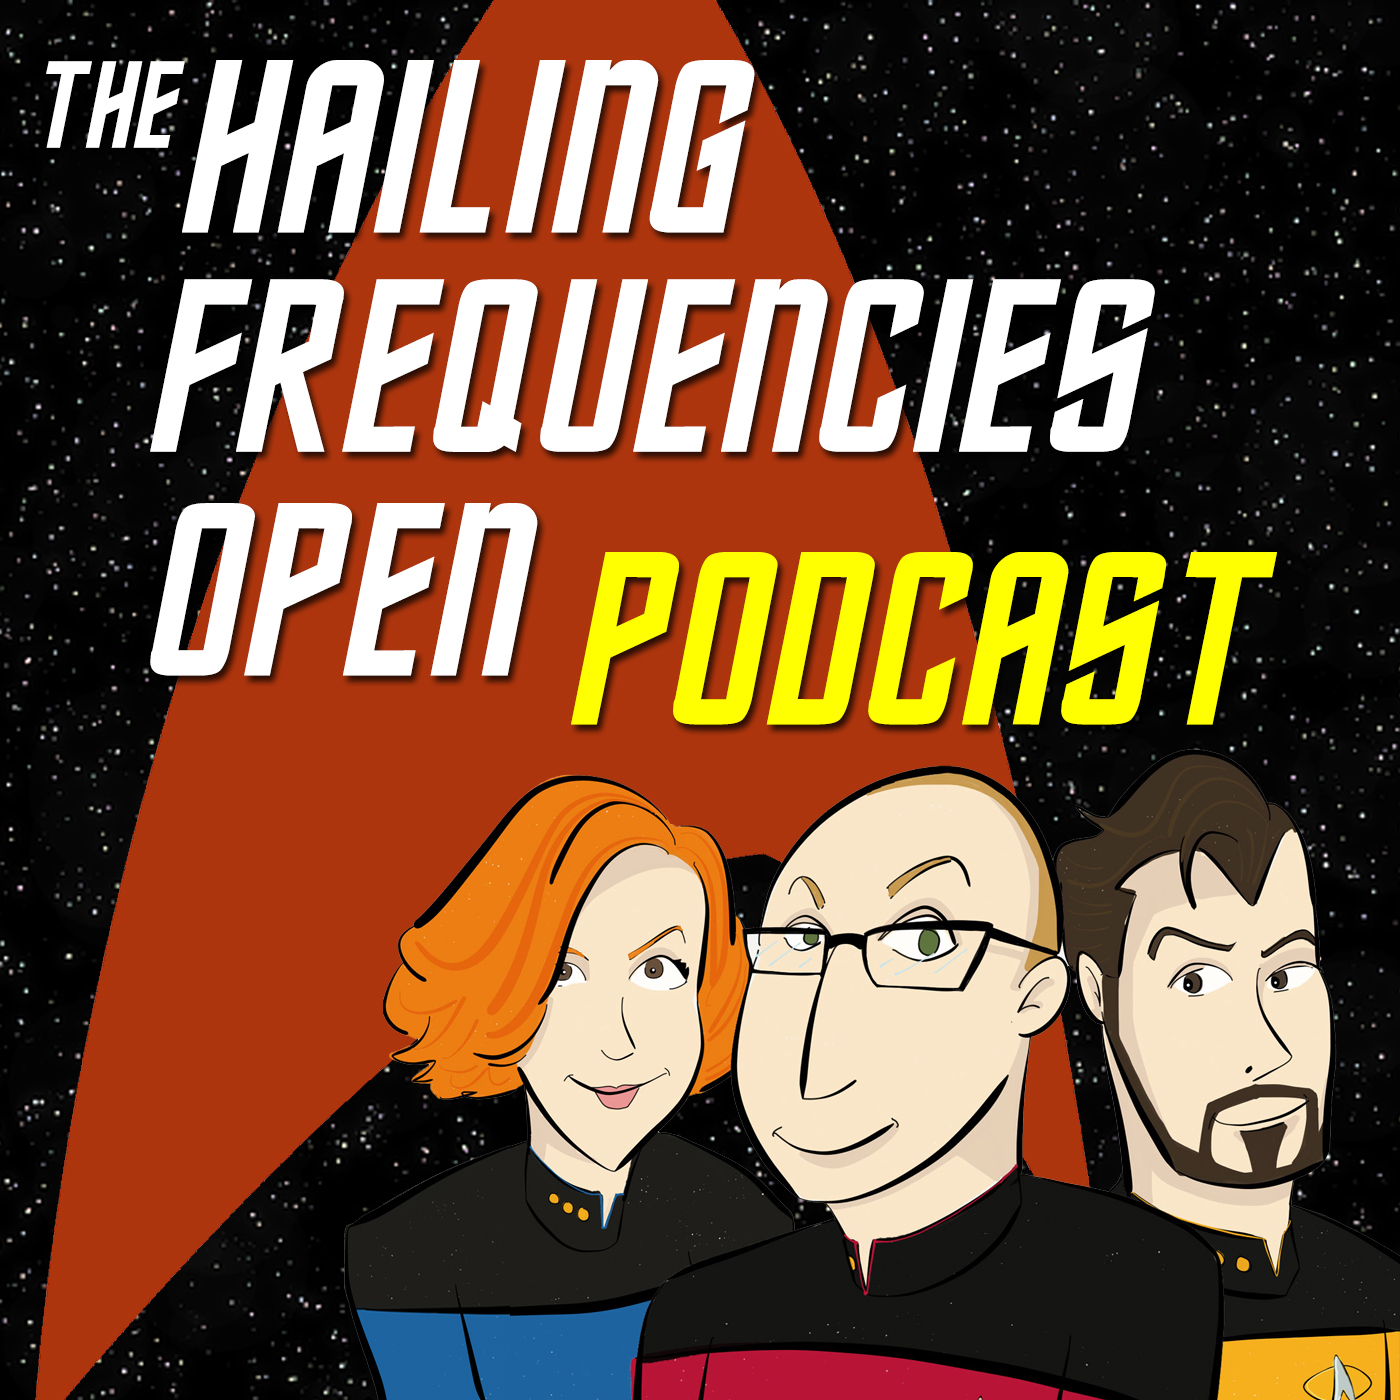 HFO Podcast Ep. #34 Why watch Star Trek During COVID19 Isolation? show art